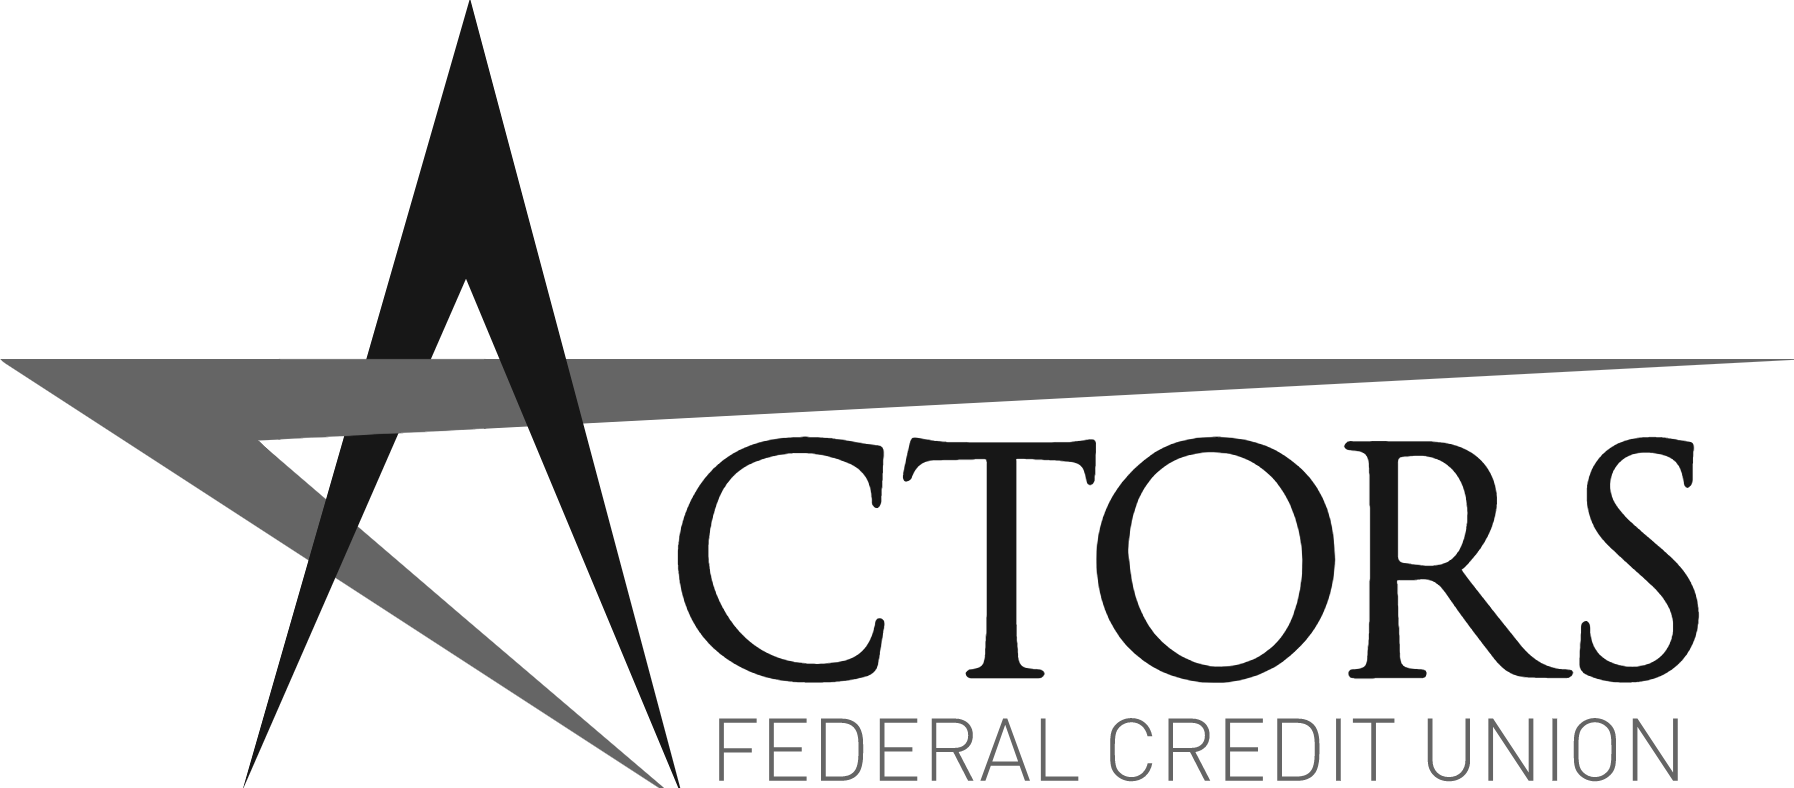 The Actors Federal Credit Union